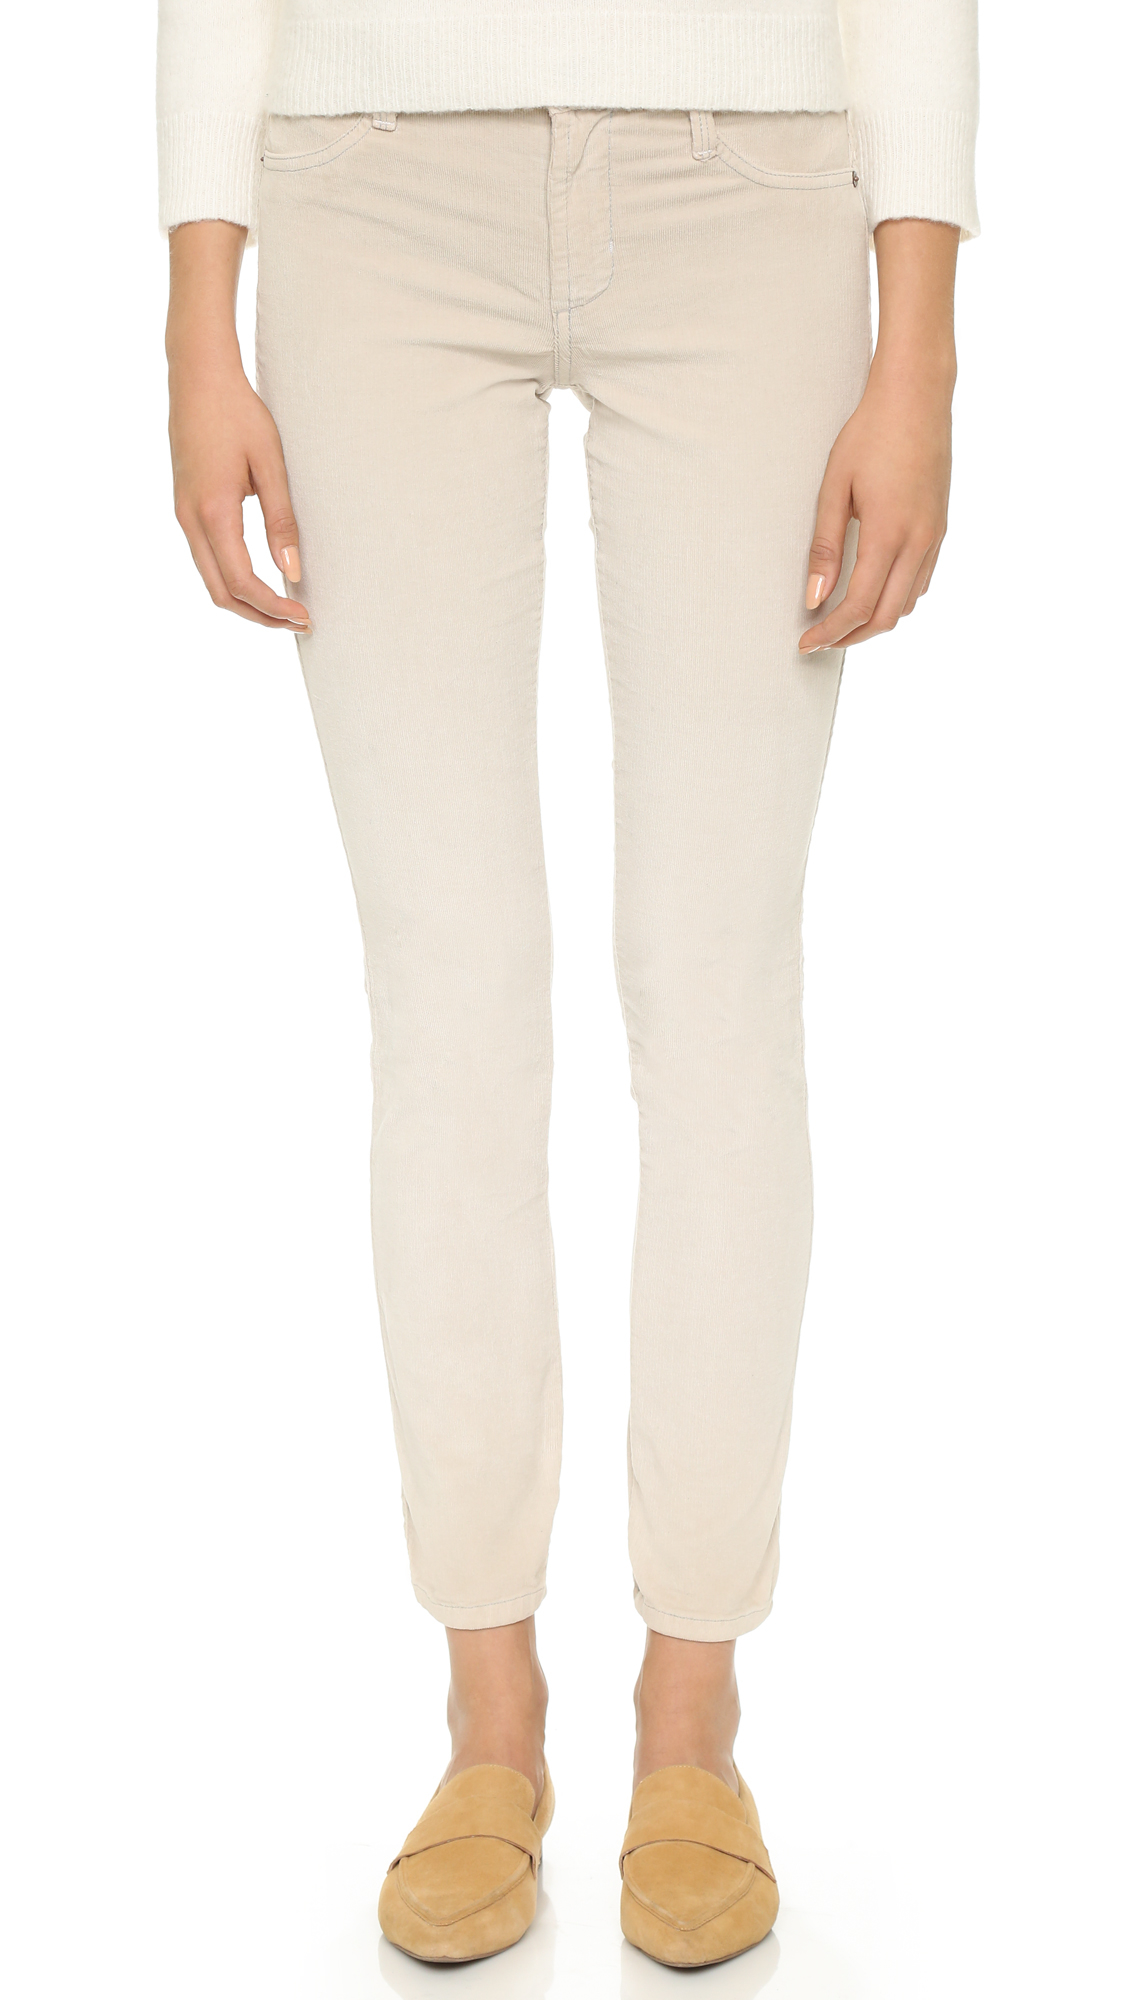 Winter White Corduroy Pants Best Womens Jeggings Jean Leggings. Corduroy Pants For Women Y S. Slim Fit Pant In Corduroy Men J Crew. How I Wear My Winter White. Pants For Women Dress Chinos Leggings More H M Us. Trend Winter Pants Leisure Plus Velvet Trousers Skinny.